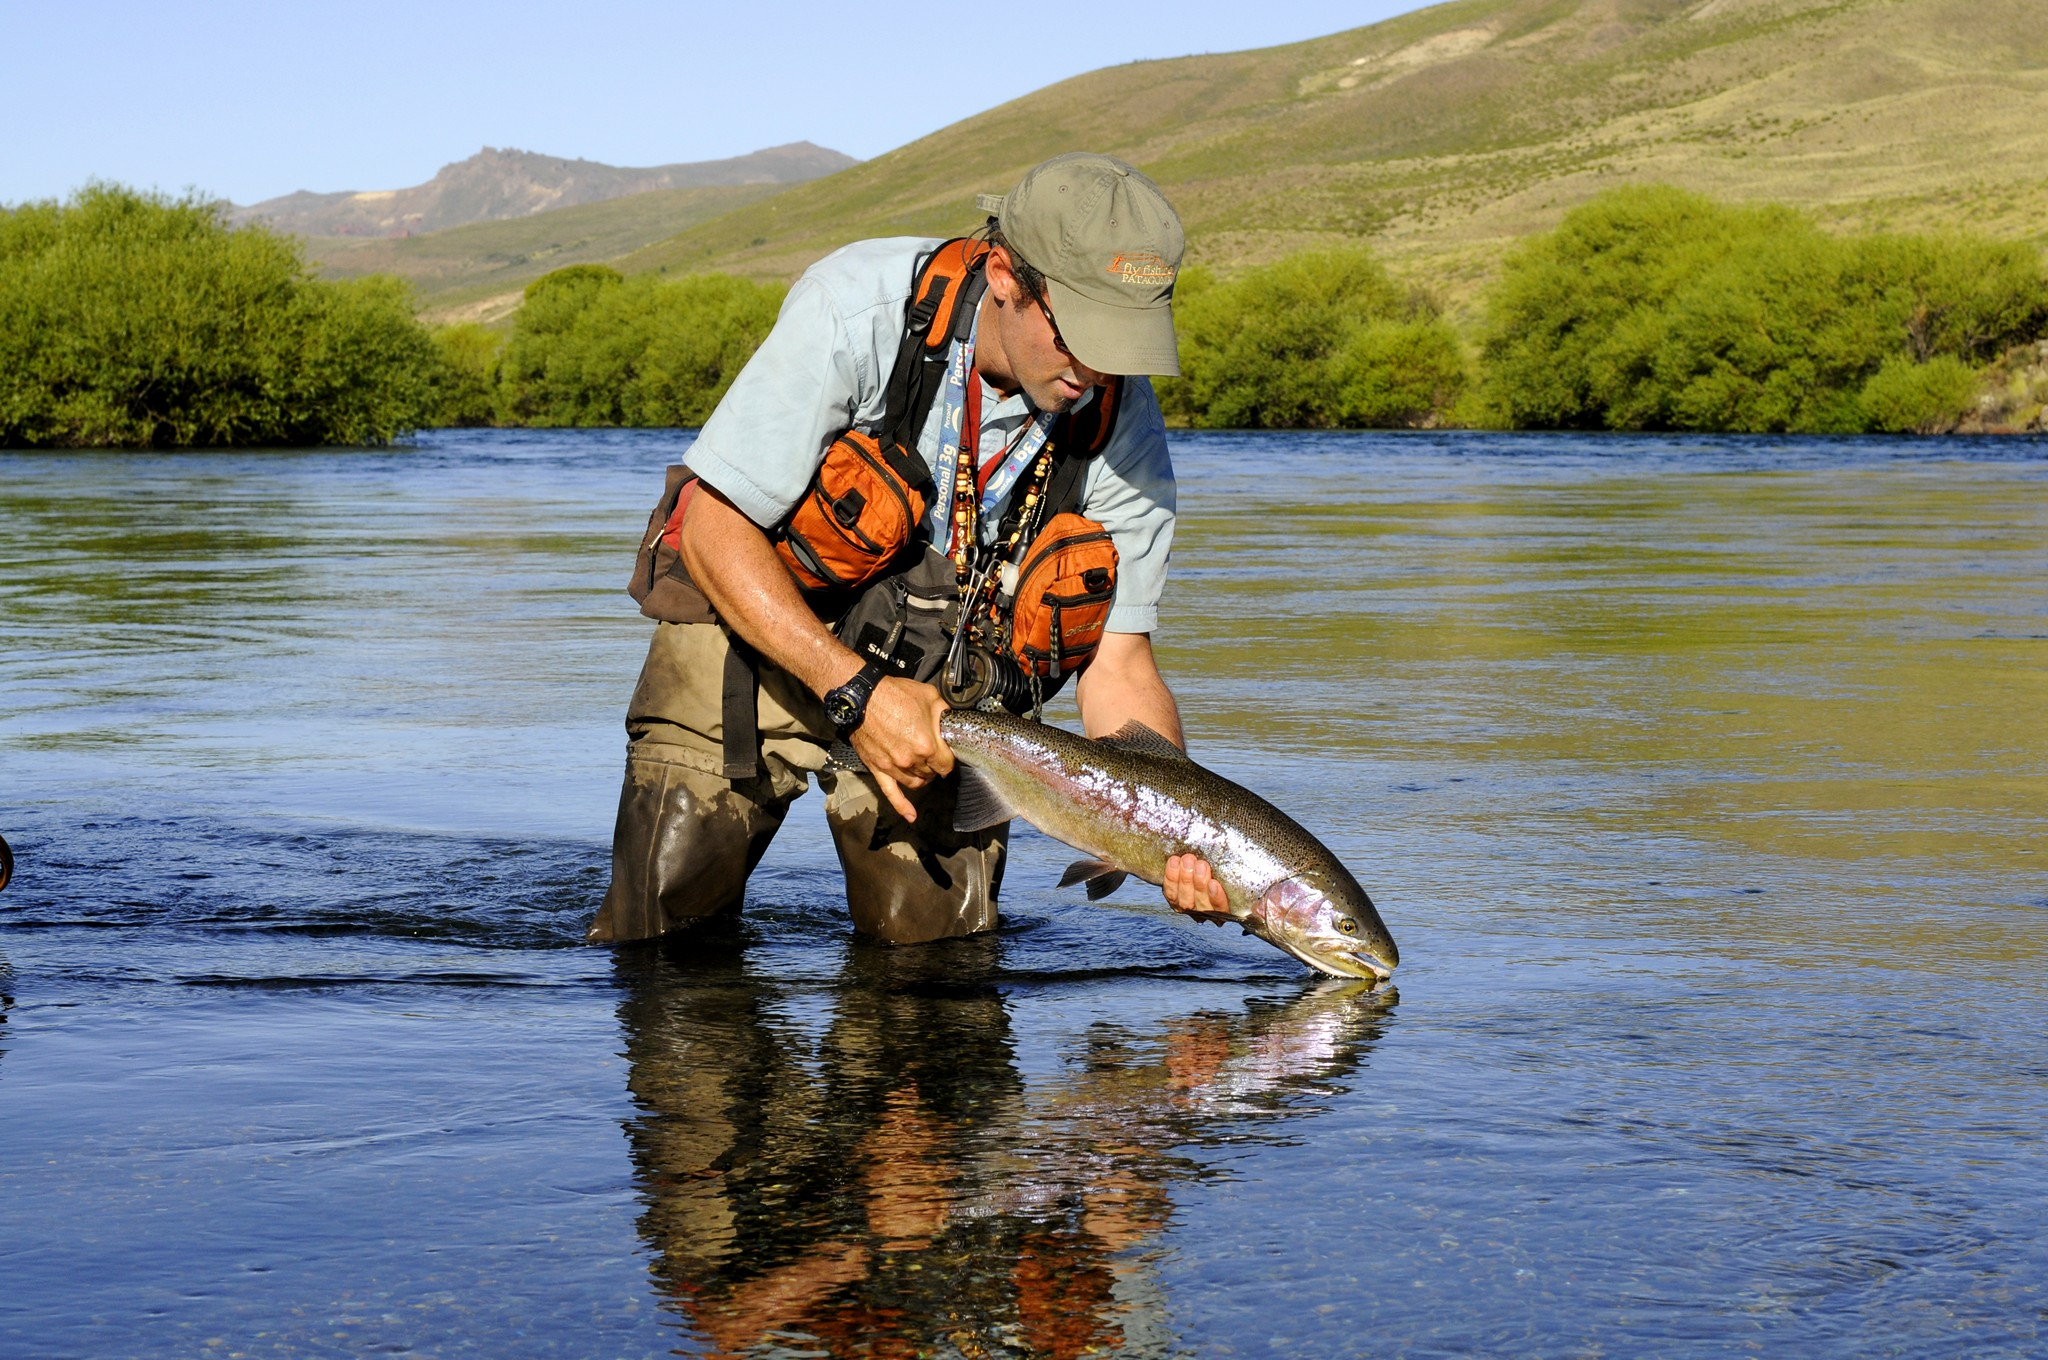 Ffp 39 s trips for trout bums fly fishing patagonia for Fly fishing photos